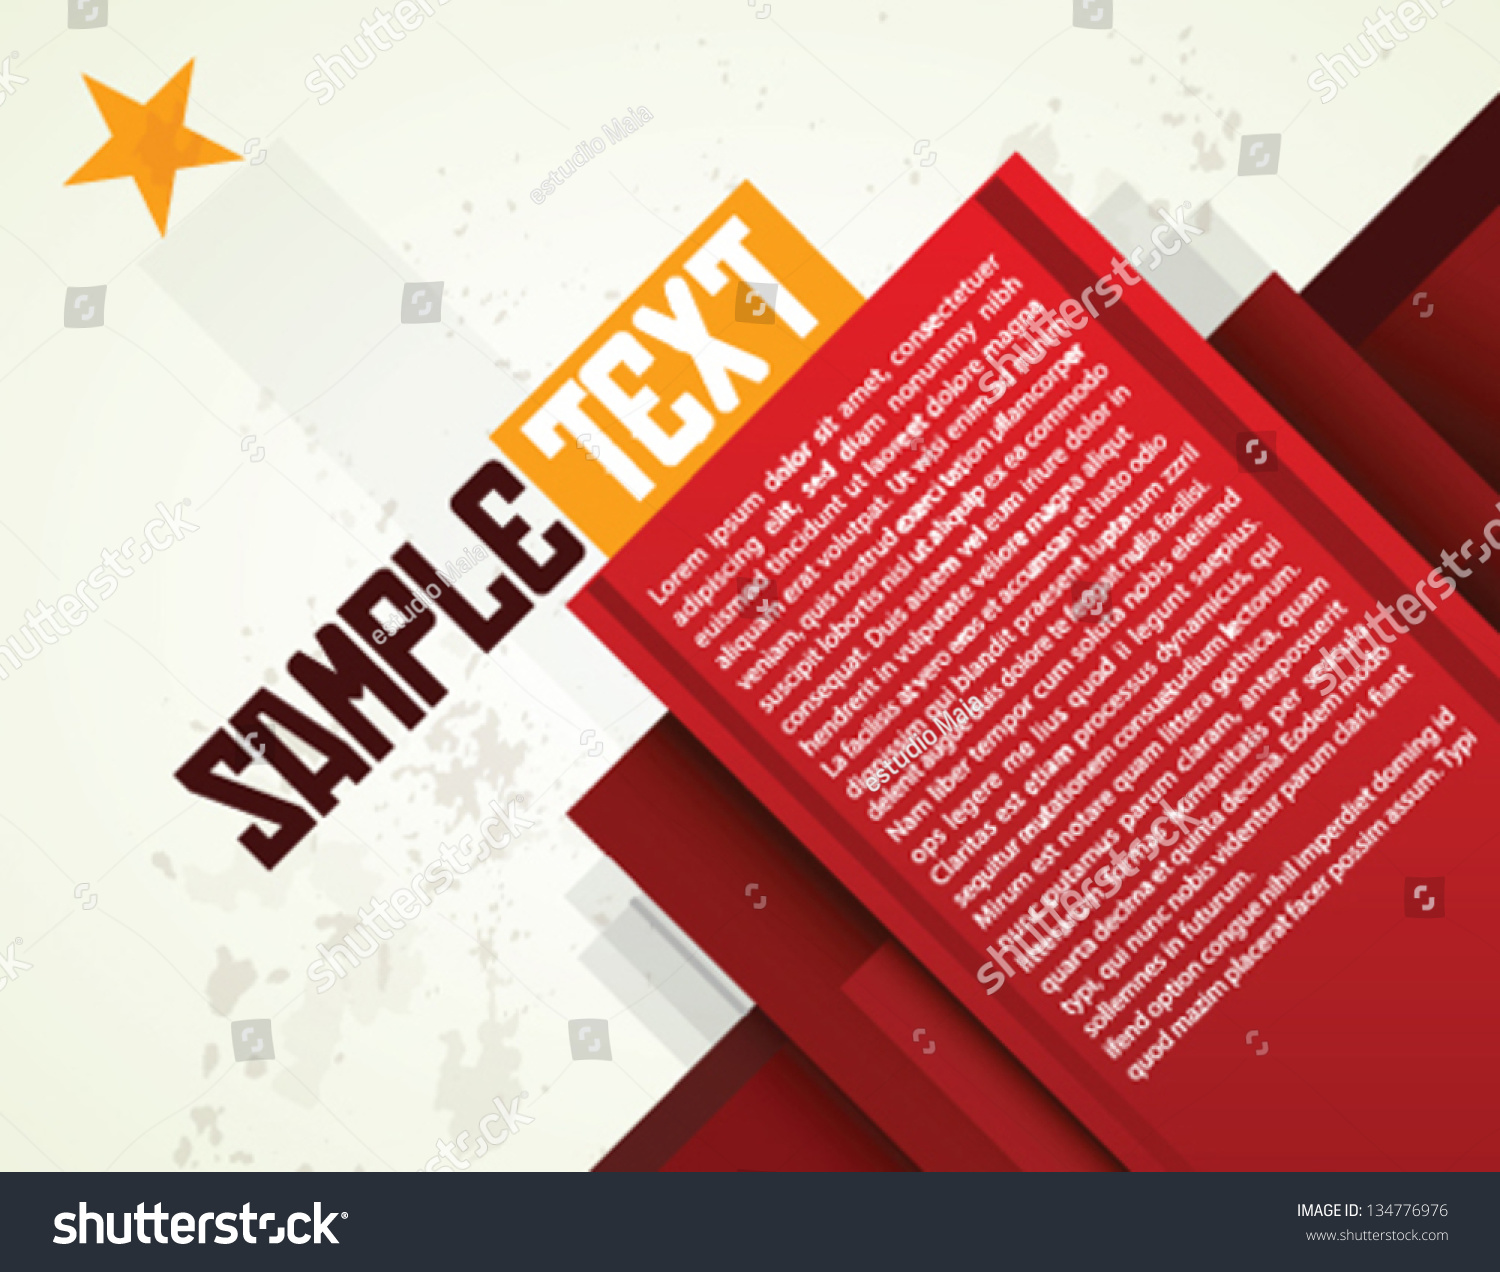 Poster design layout - Russian Layout Print Poster Template Vector Design Layout Design Background Graphics